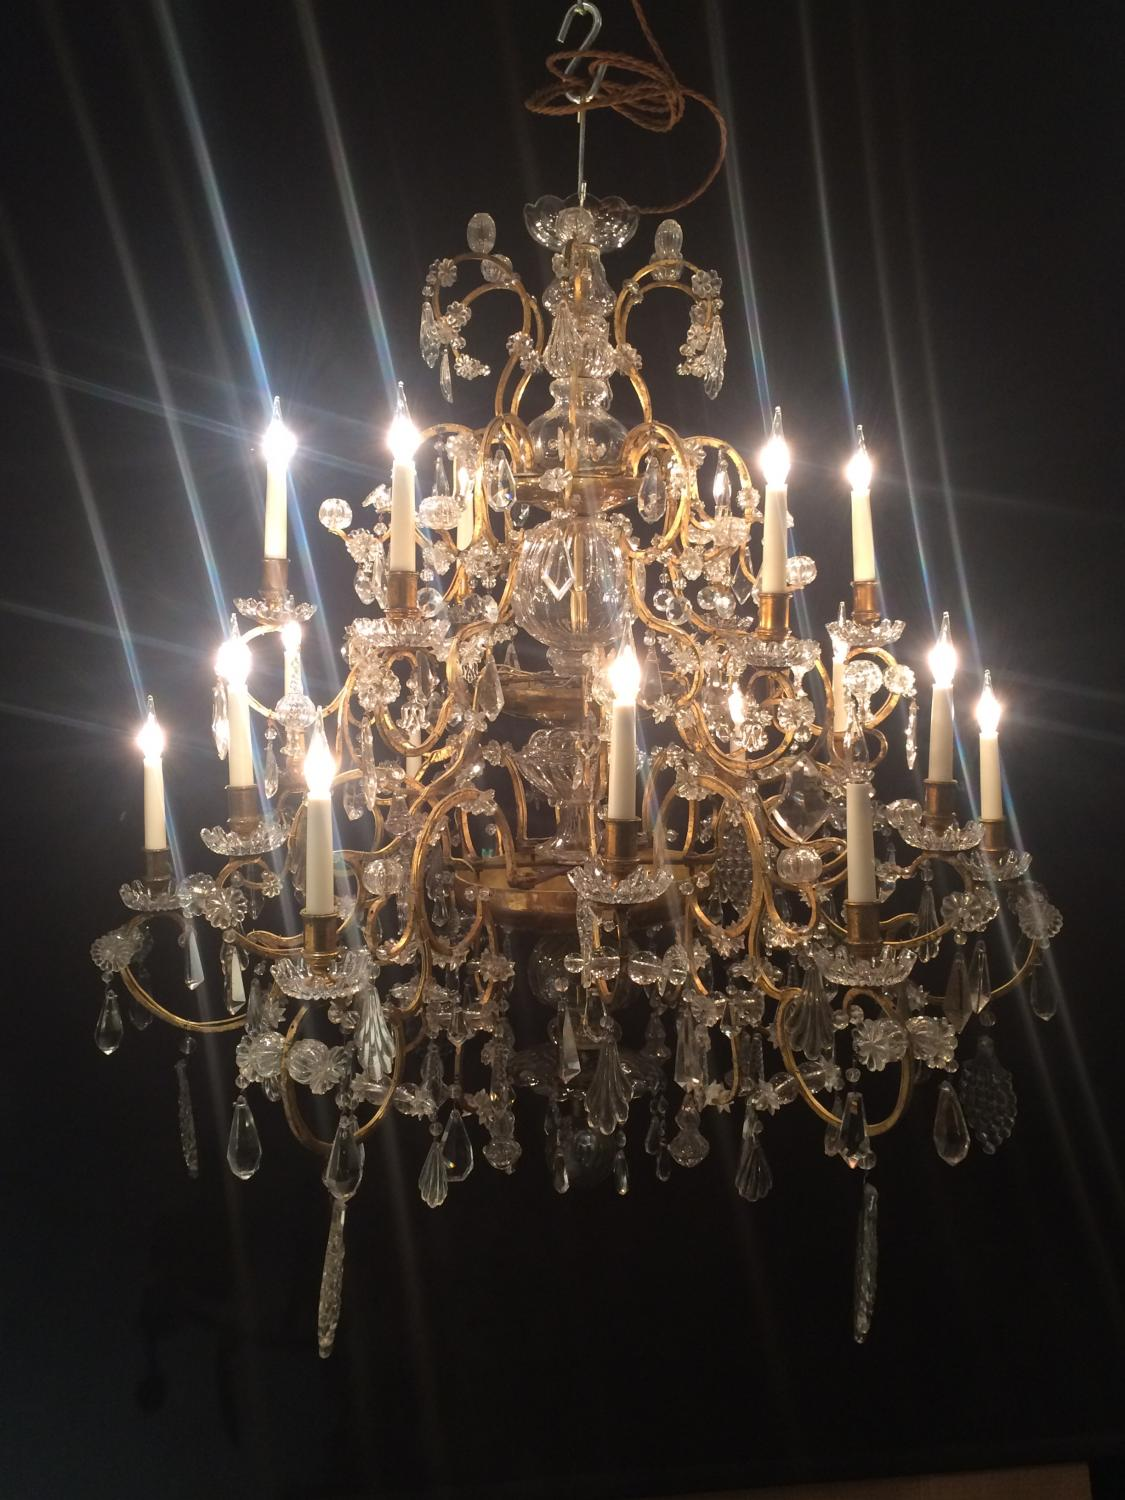 A large Genoese 18th century chandelier